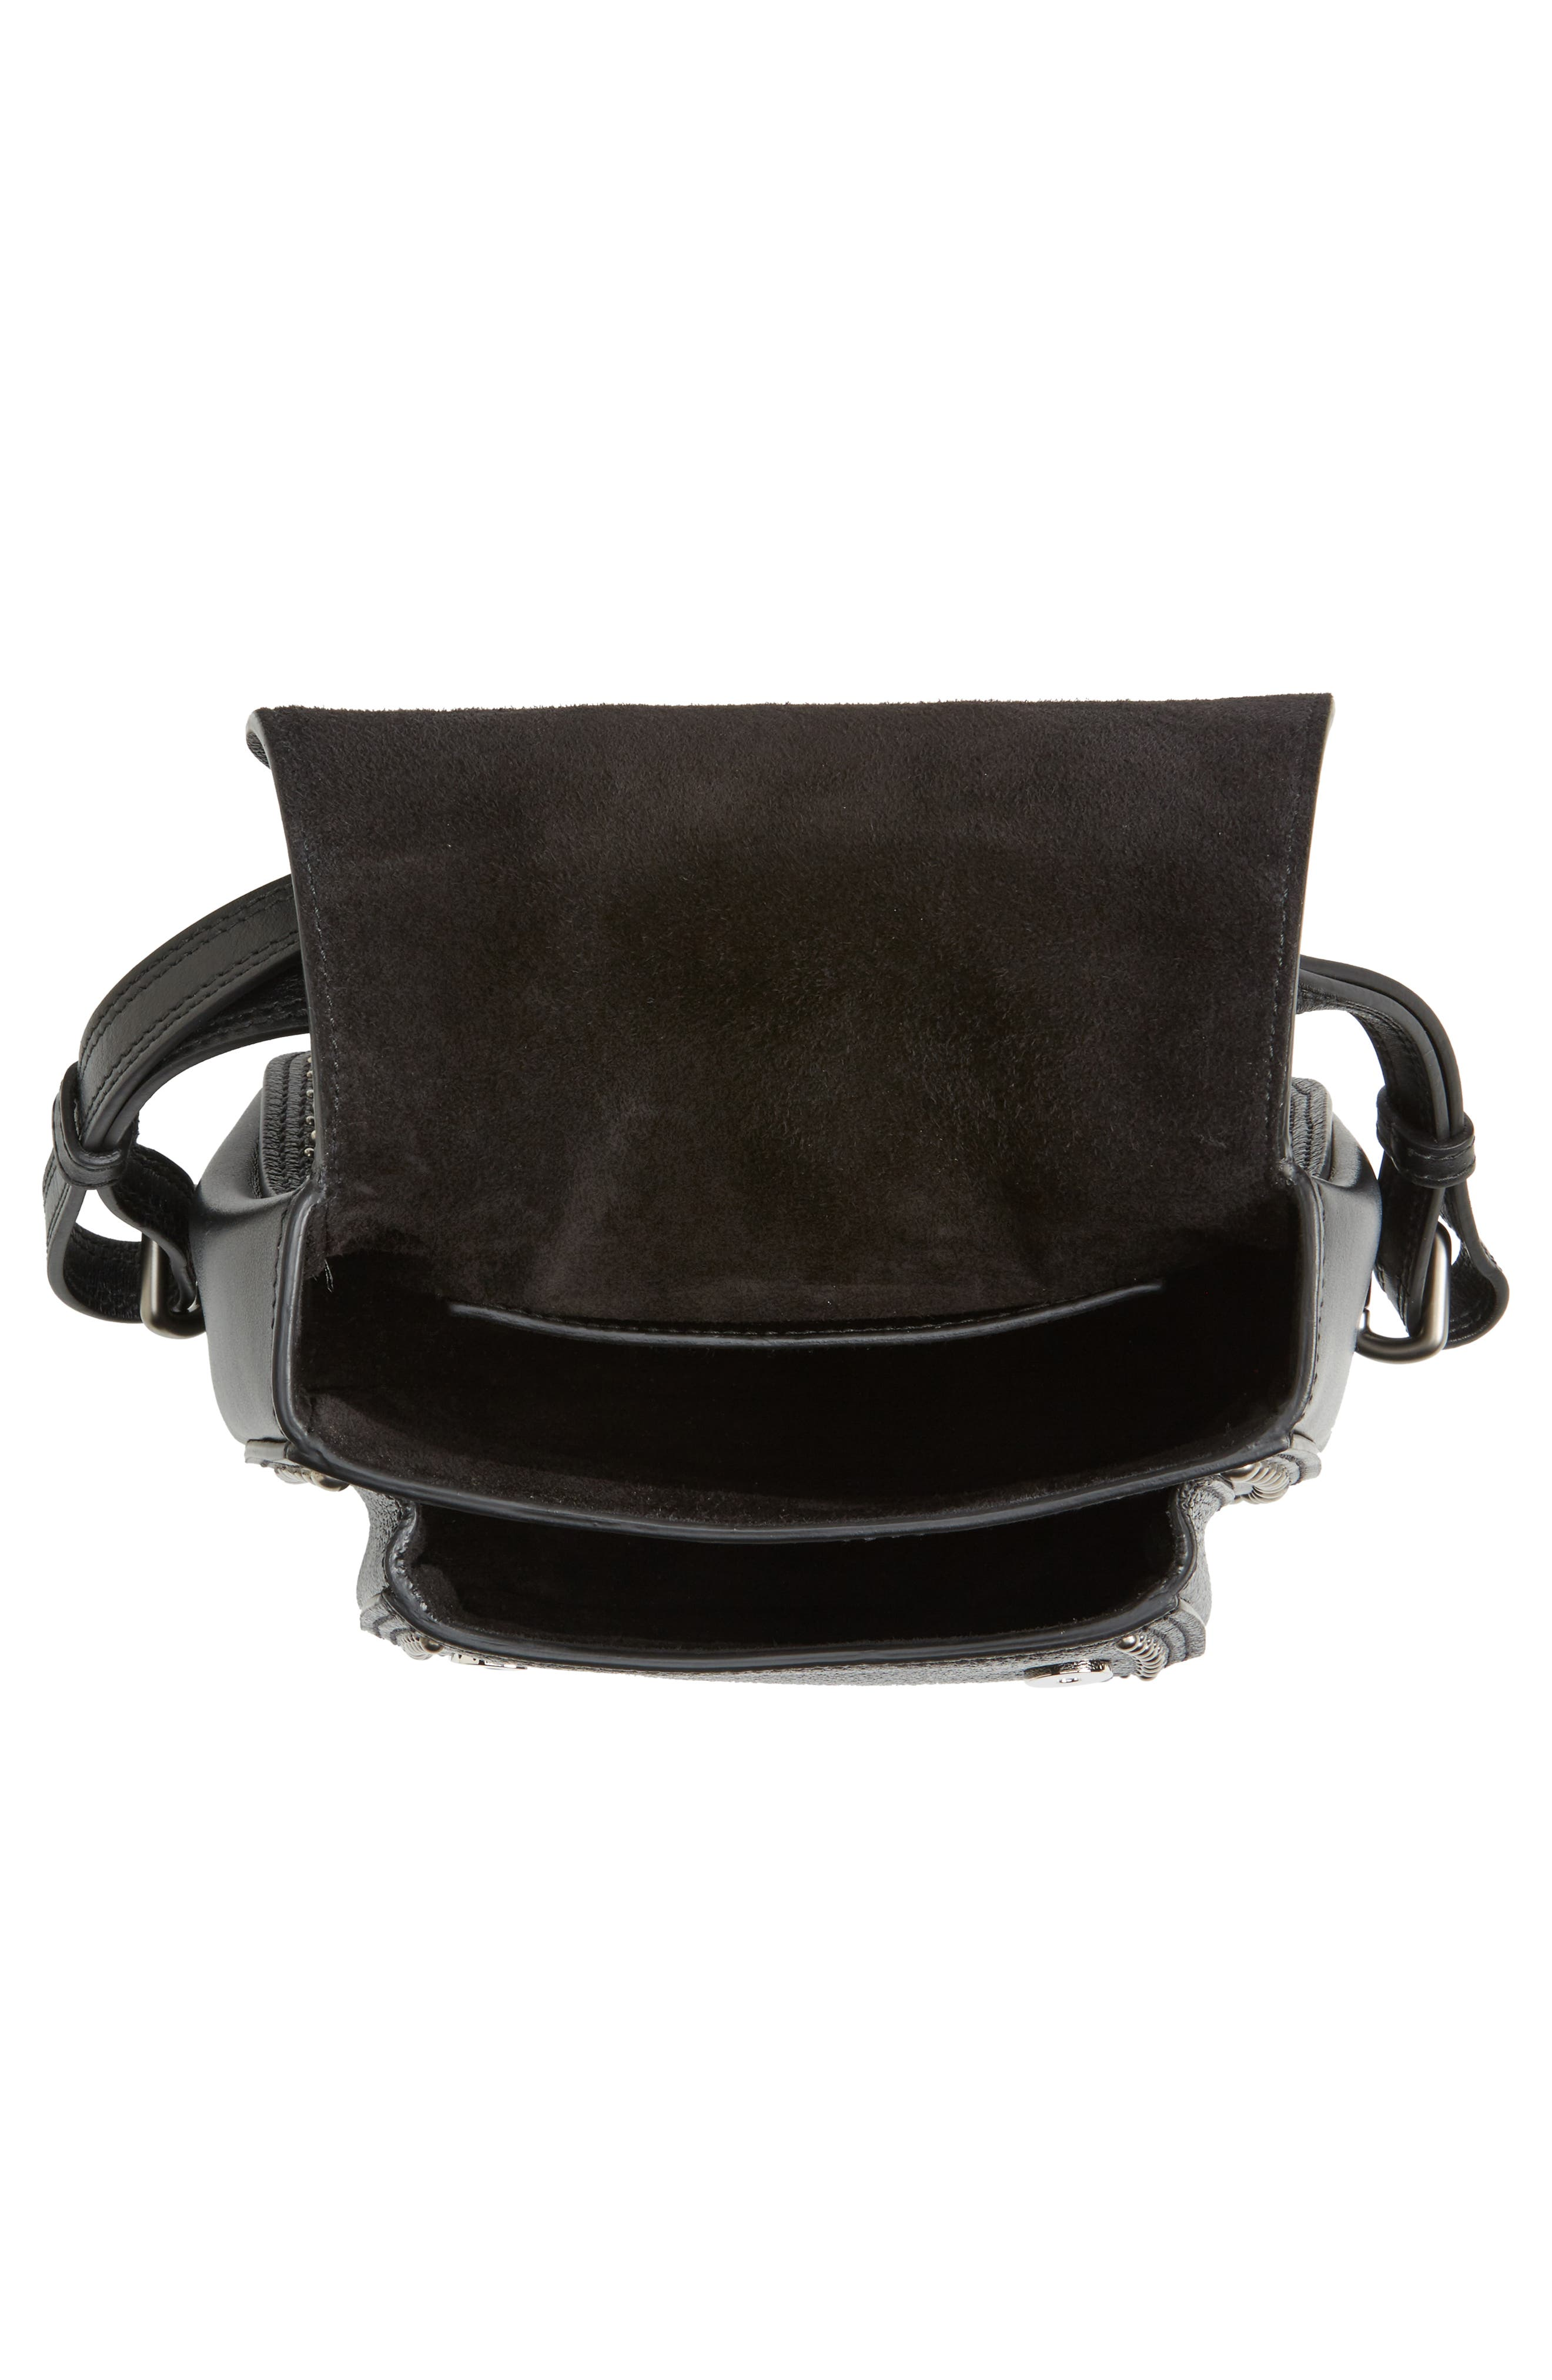 Dahlia Leather Shoulder Bag,                             Alternate thumbnail 4, color,                             NERO